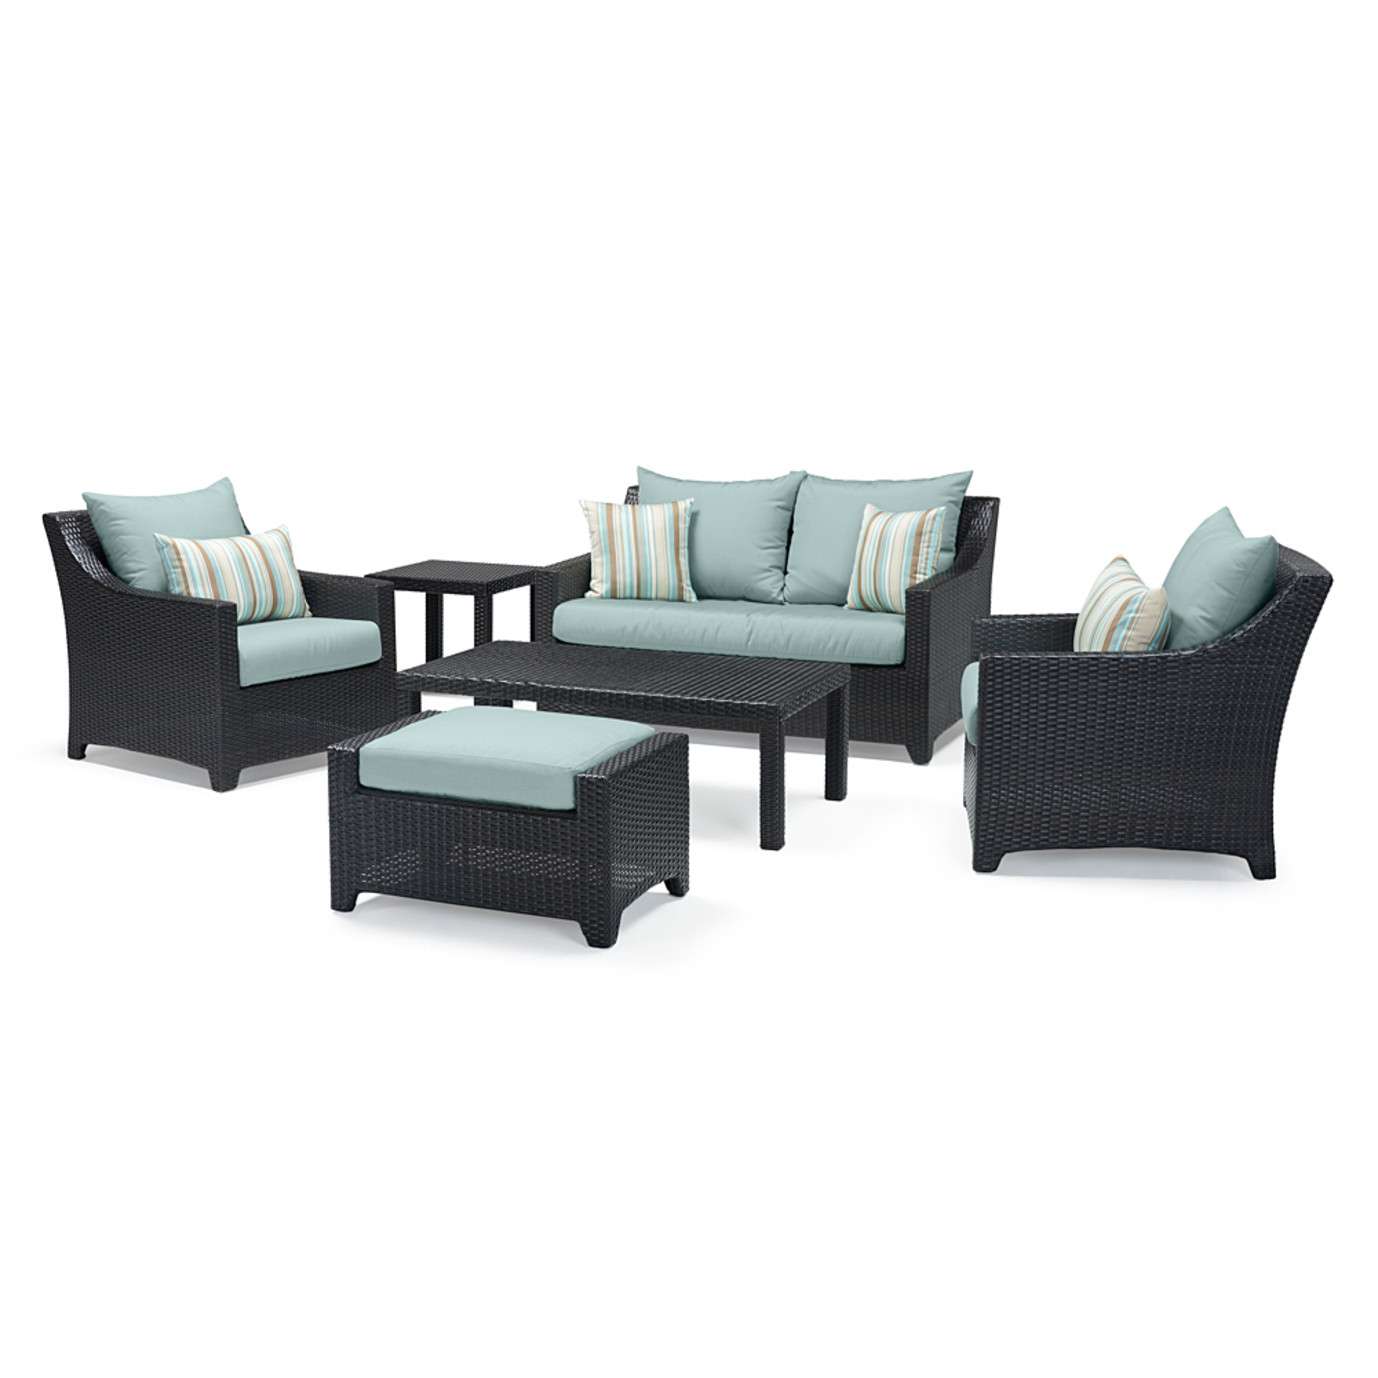 Deco™ 6pc Love and Club Seating Set - Bliss Blue